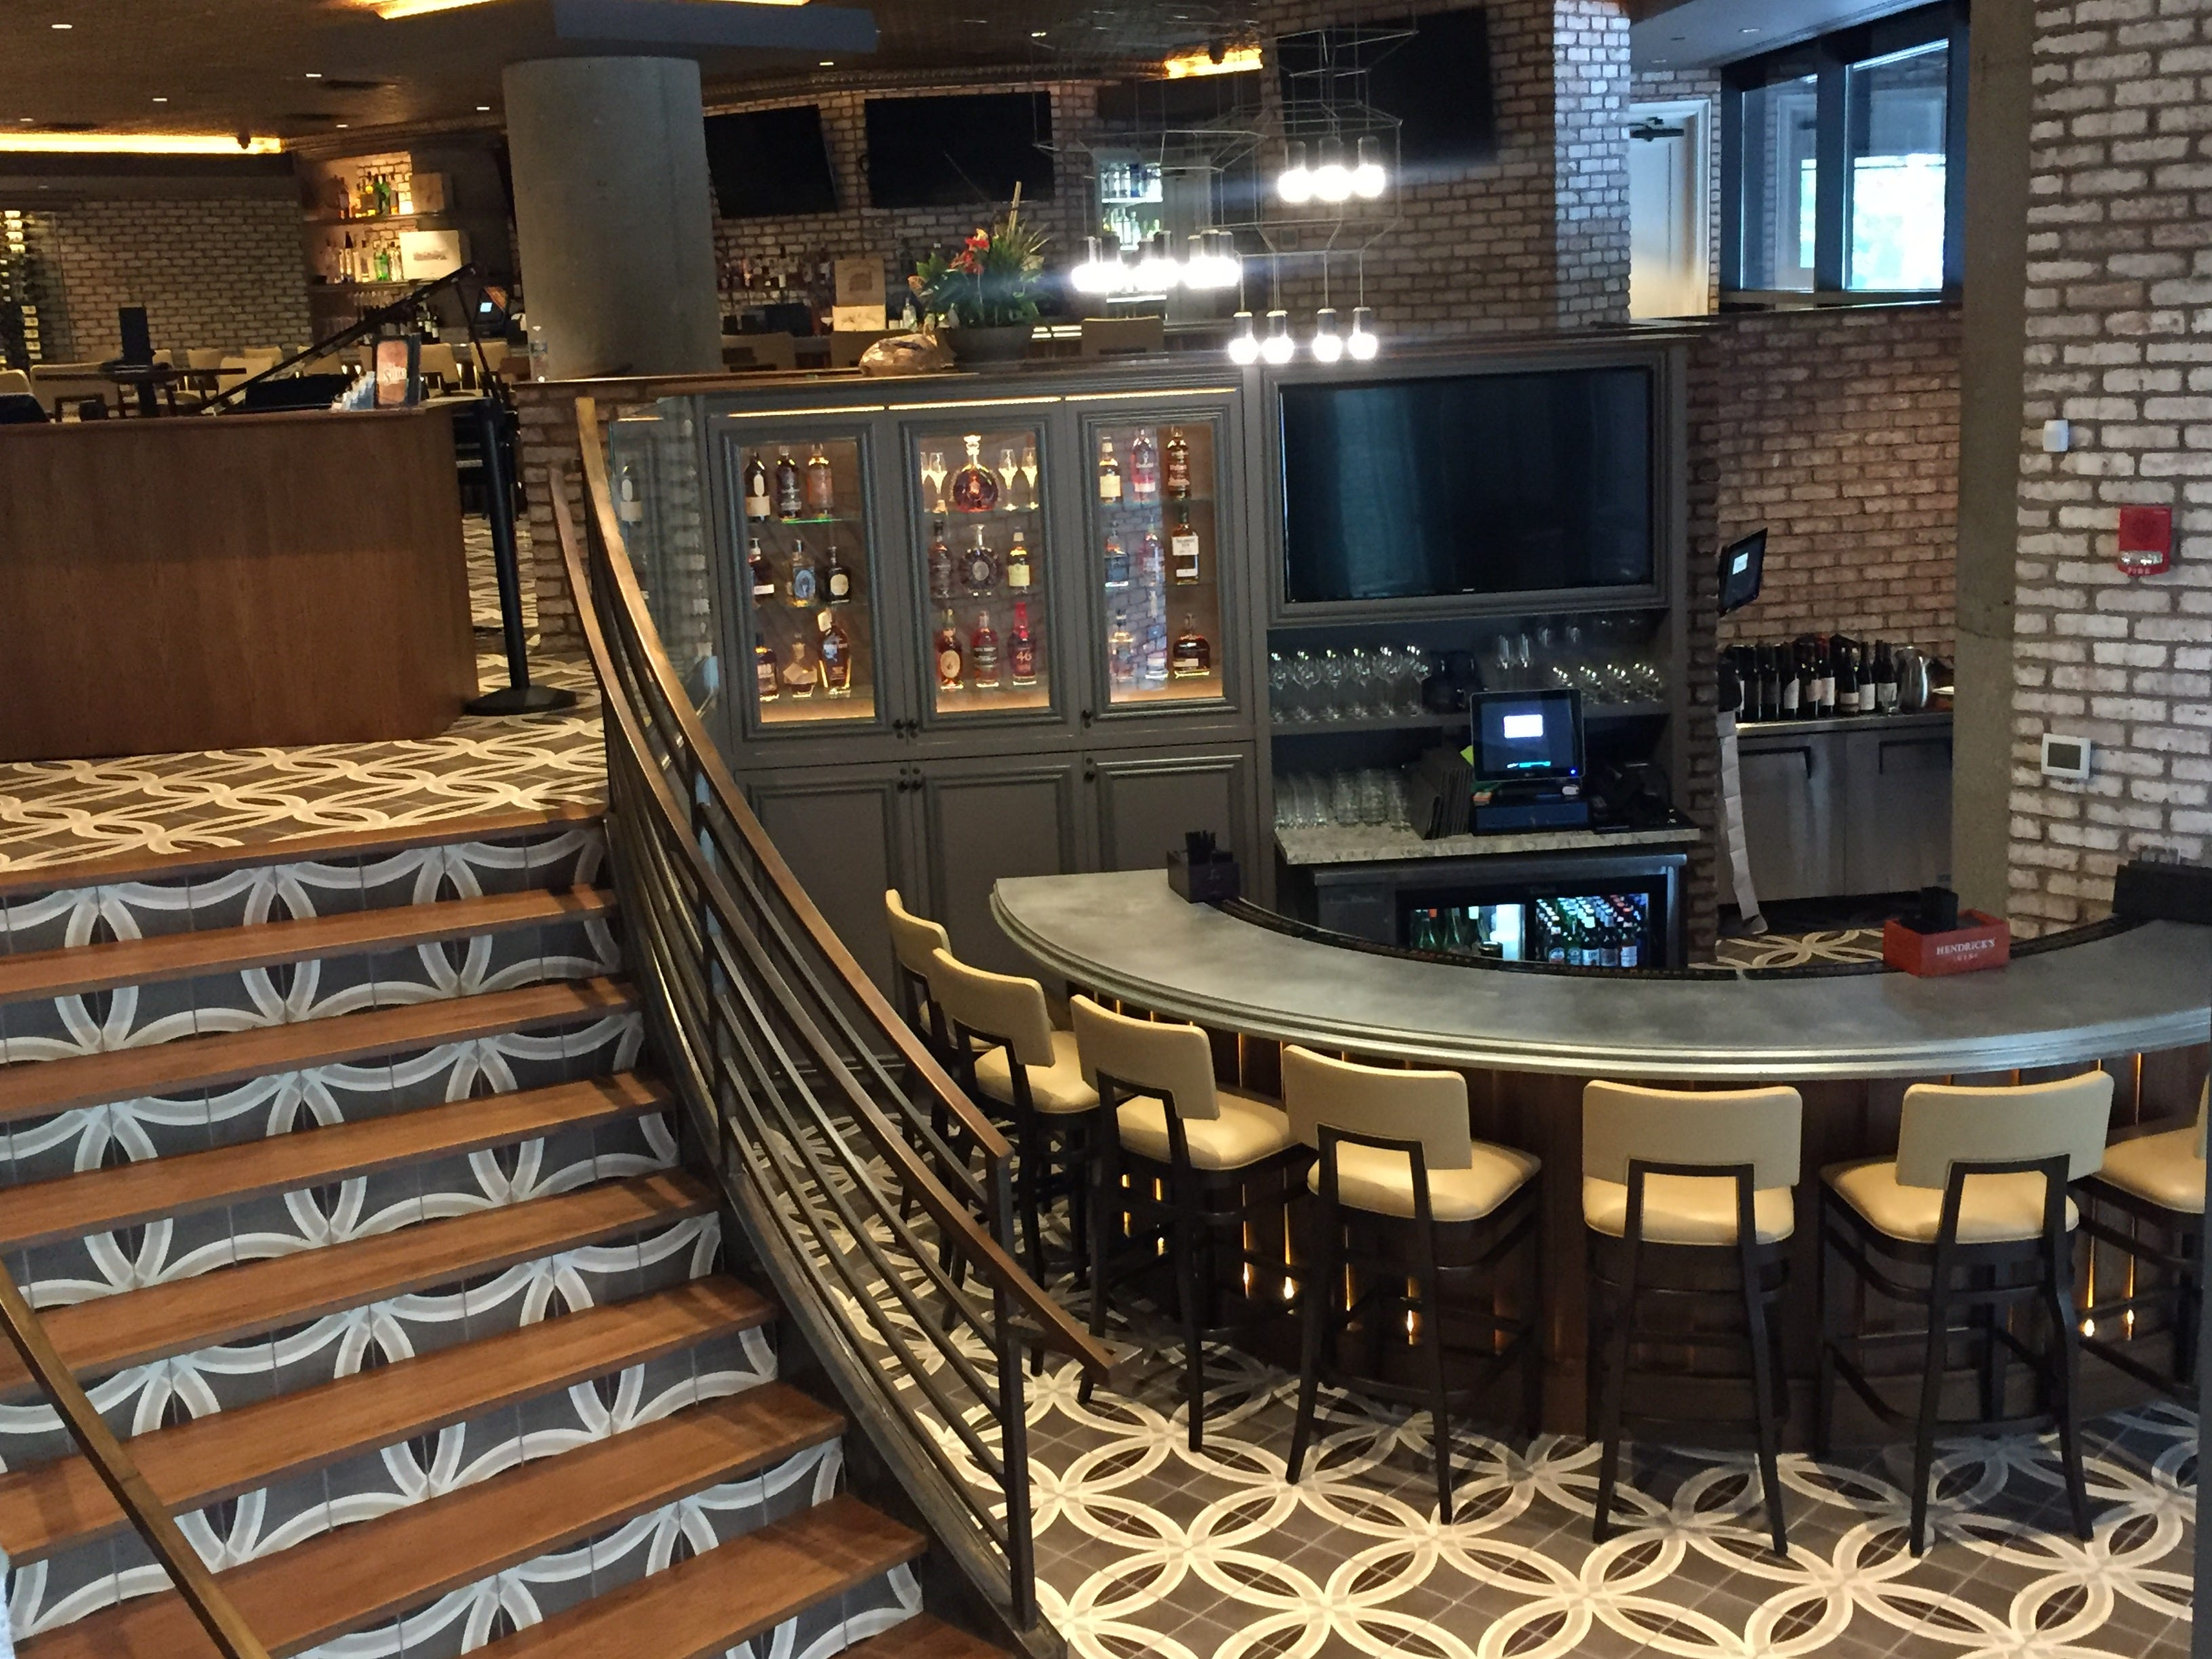 Just want a drink and a nibble? Pop into the first-floor bar for martinis, sea bass tacos and prime rib sliders at Tony's Steaks & Seafood at the former Colts Grille, 110 W. Washington St., Downtown Indianapolis.